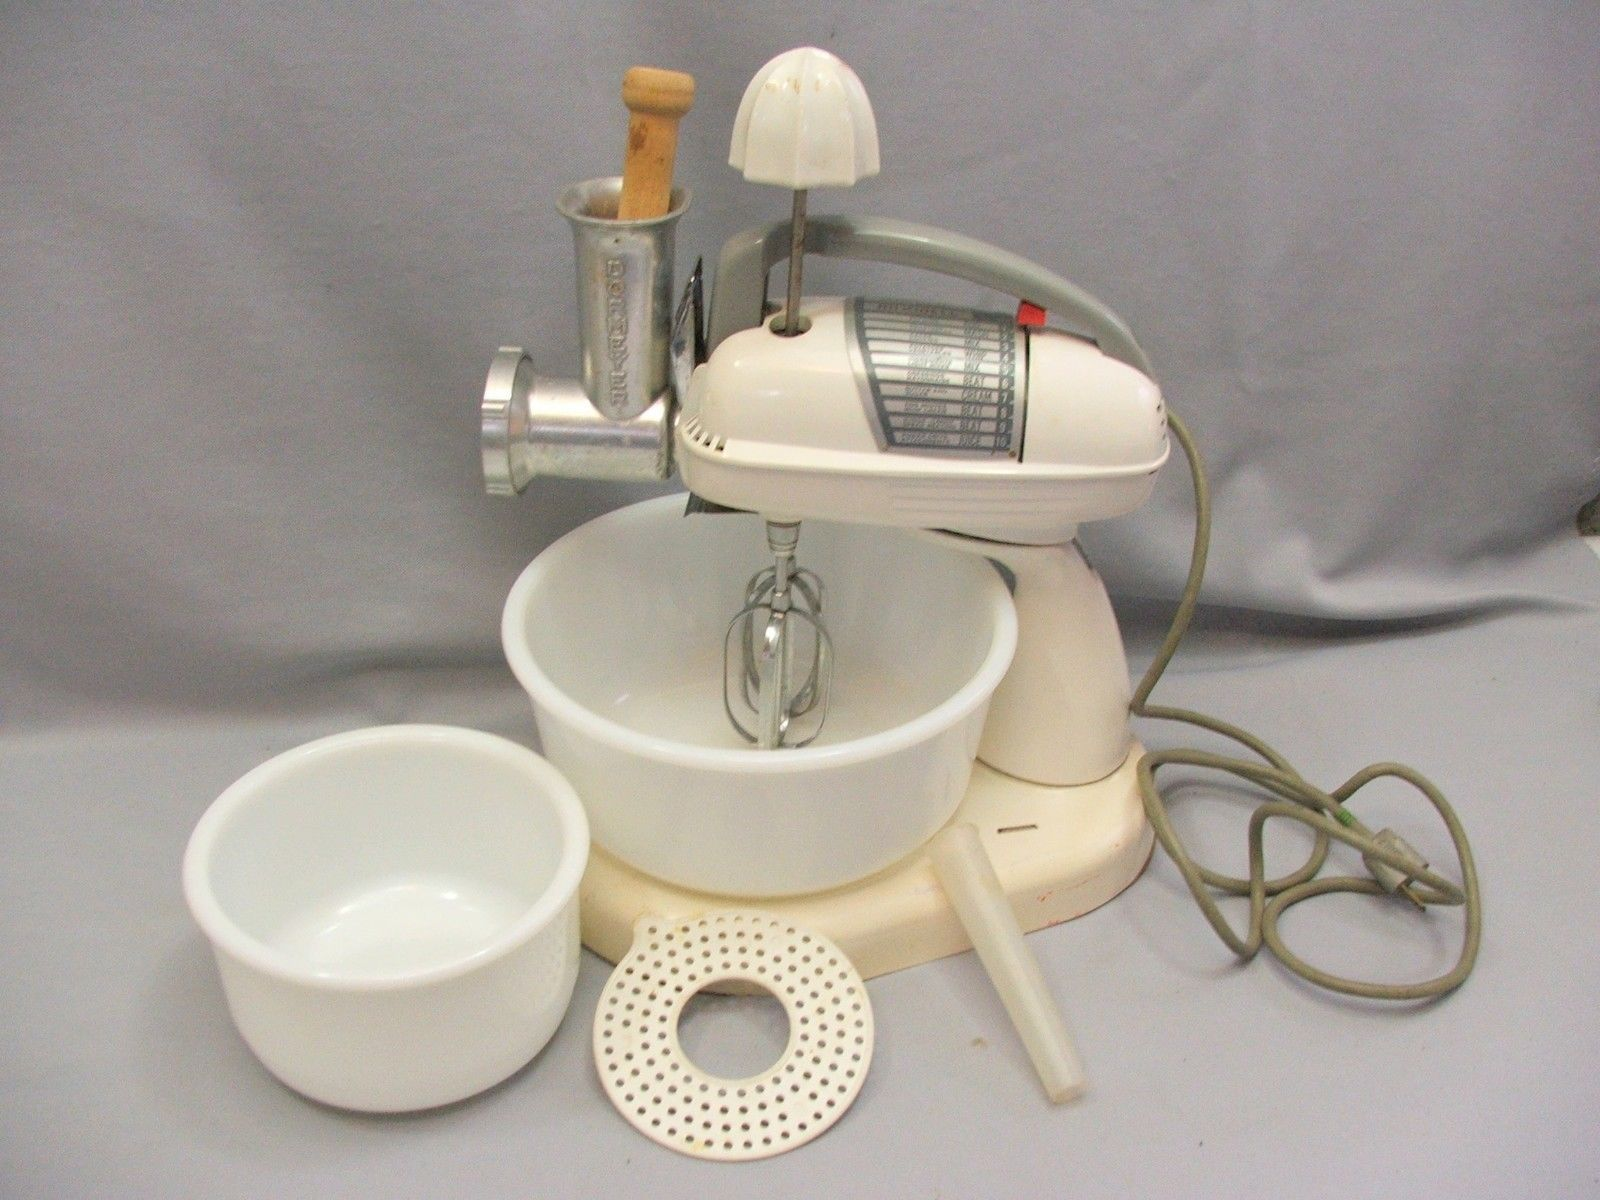 Vintage Kitchenaid Mixers For Sale On Ebay